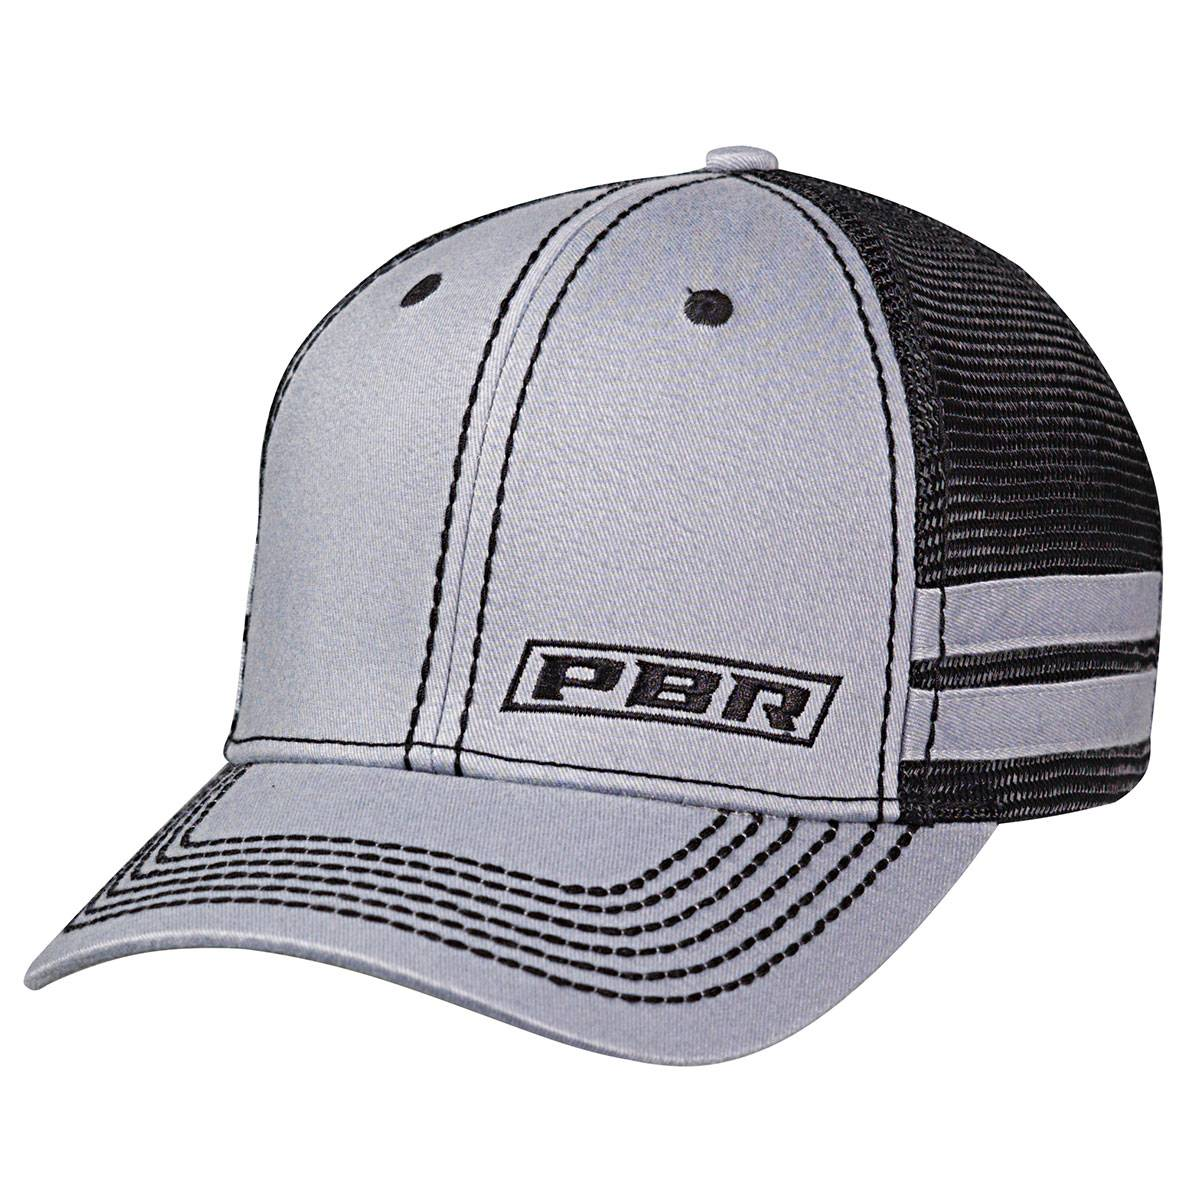 PBR Text Offset Logo Side Stripes Cap - Mens